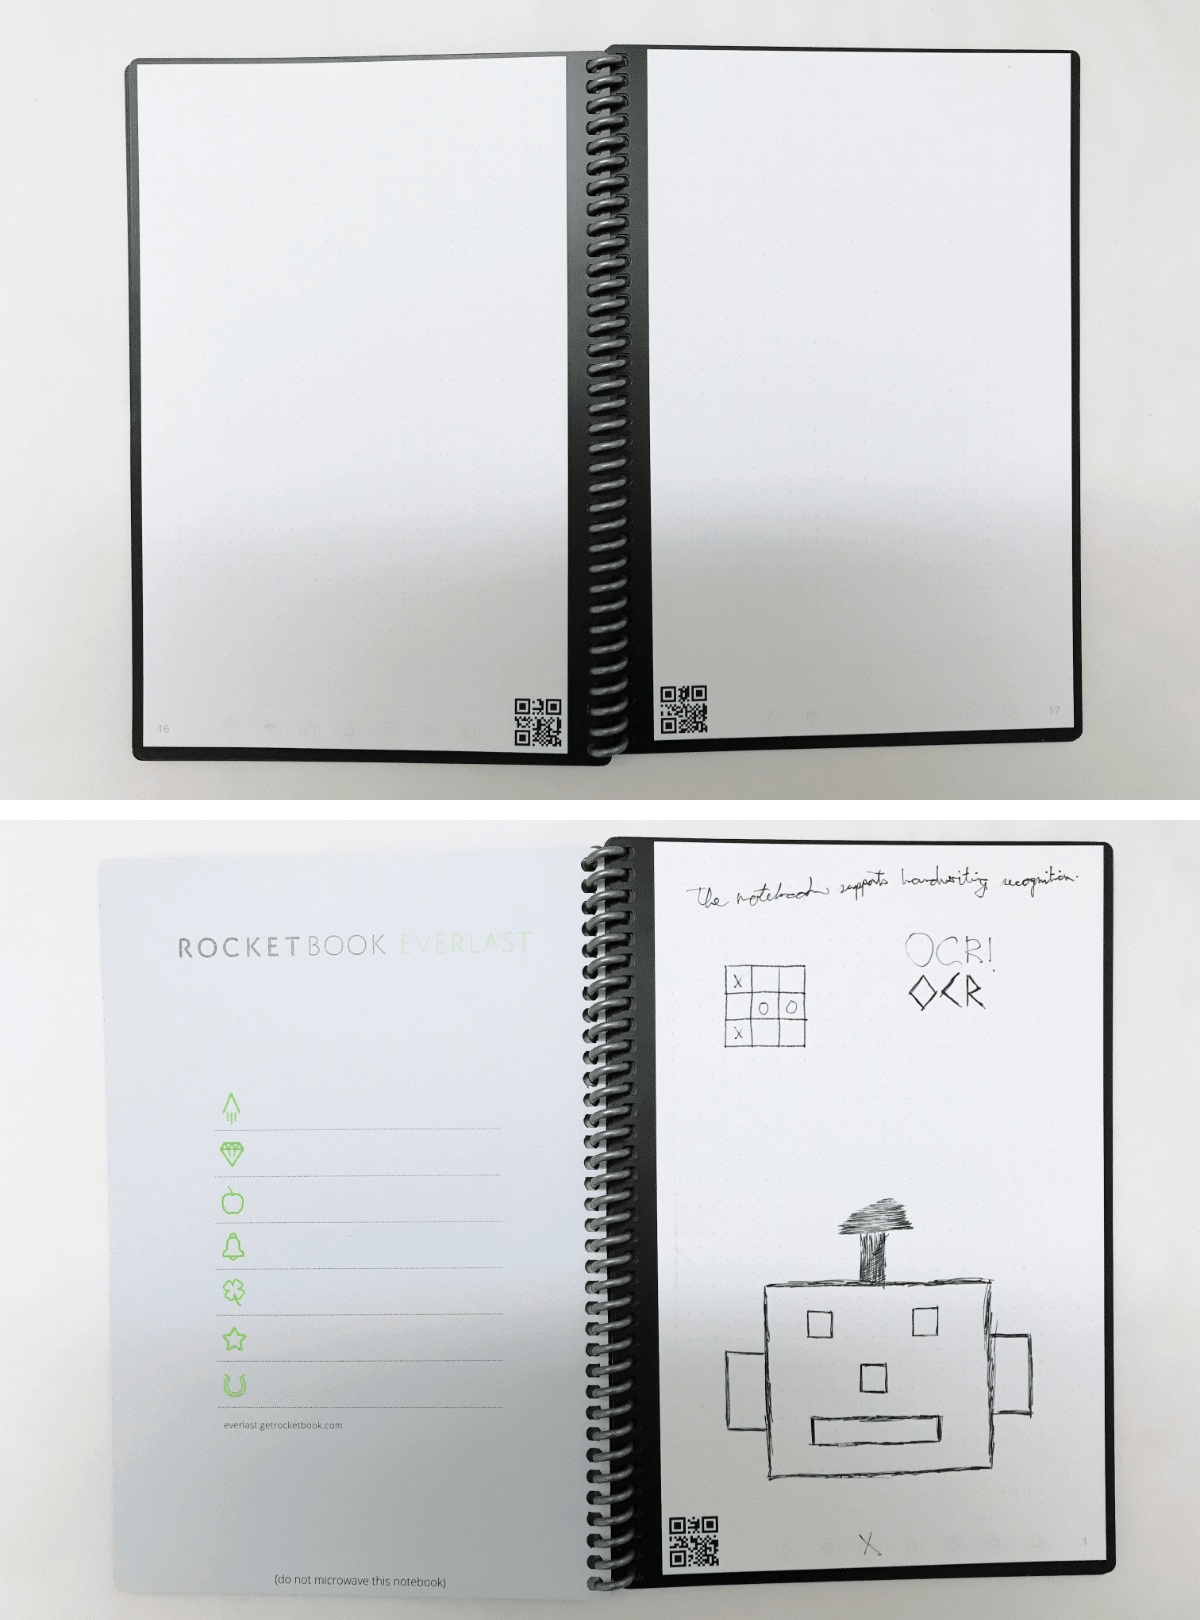 Image of the rocketbook reusable notebook